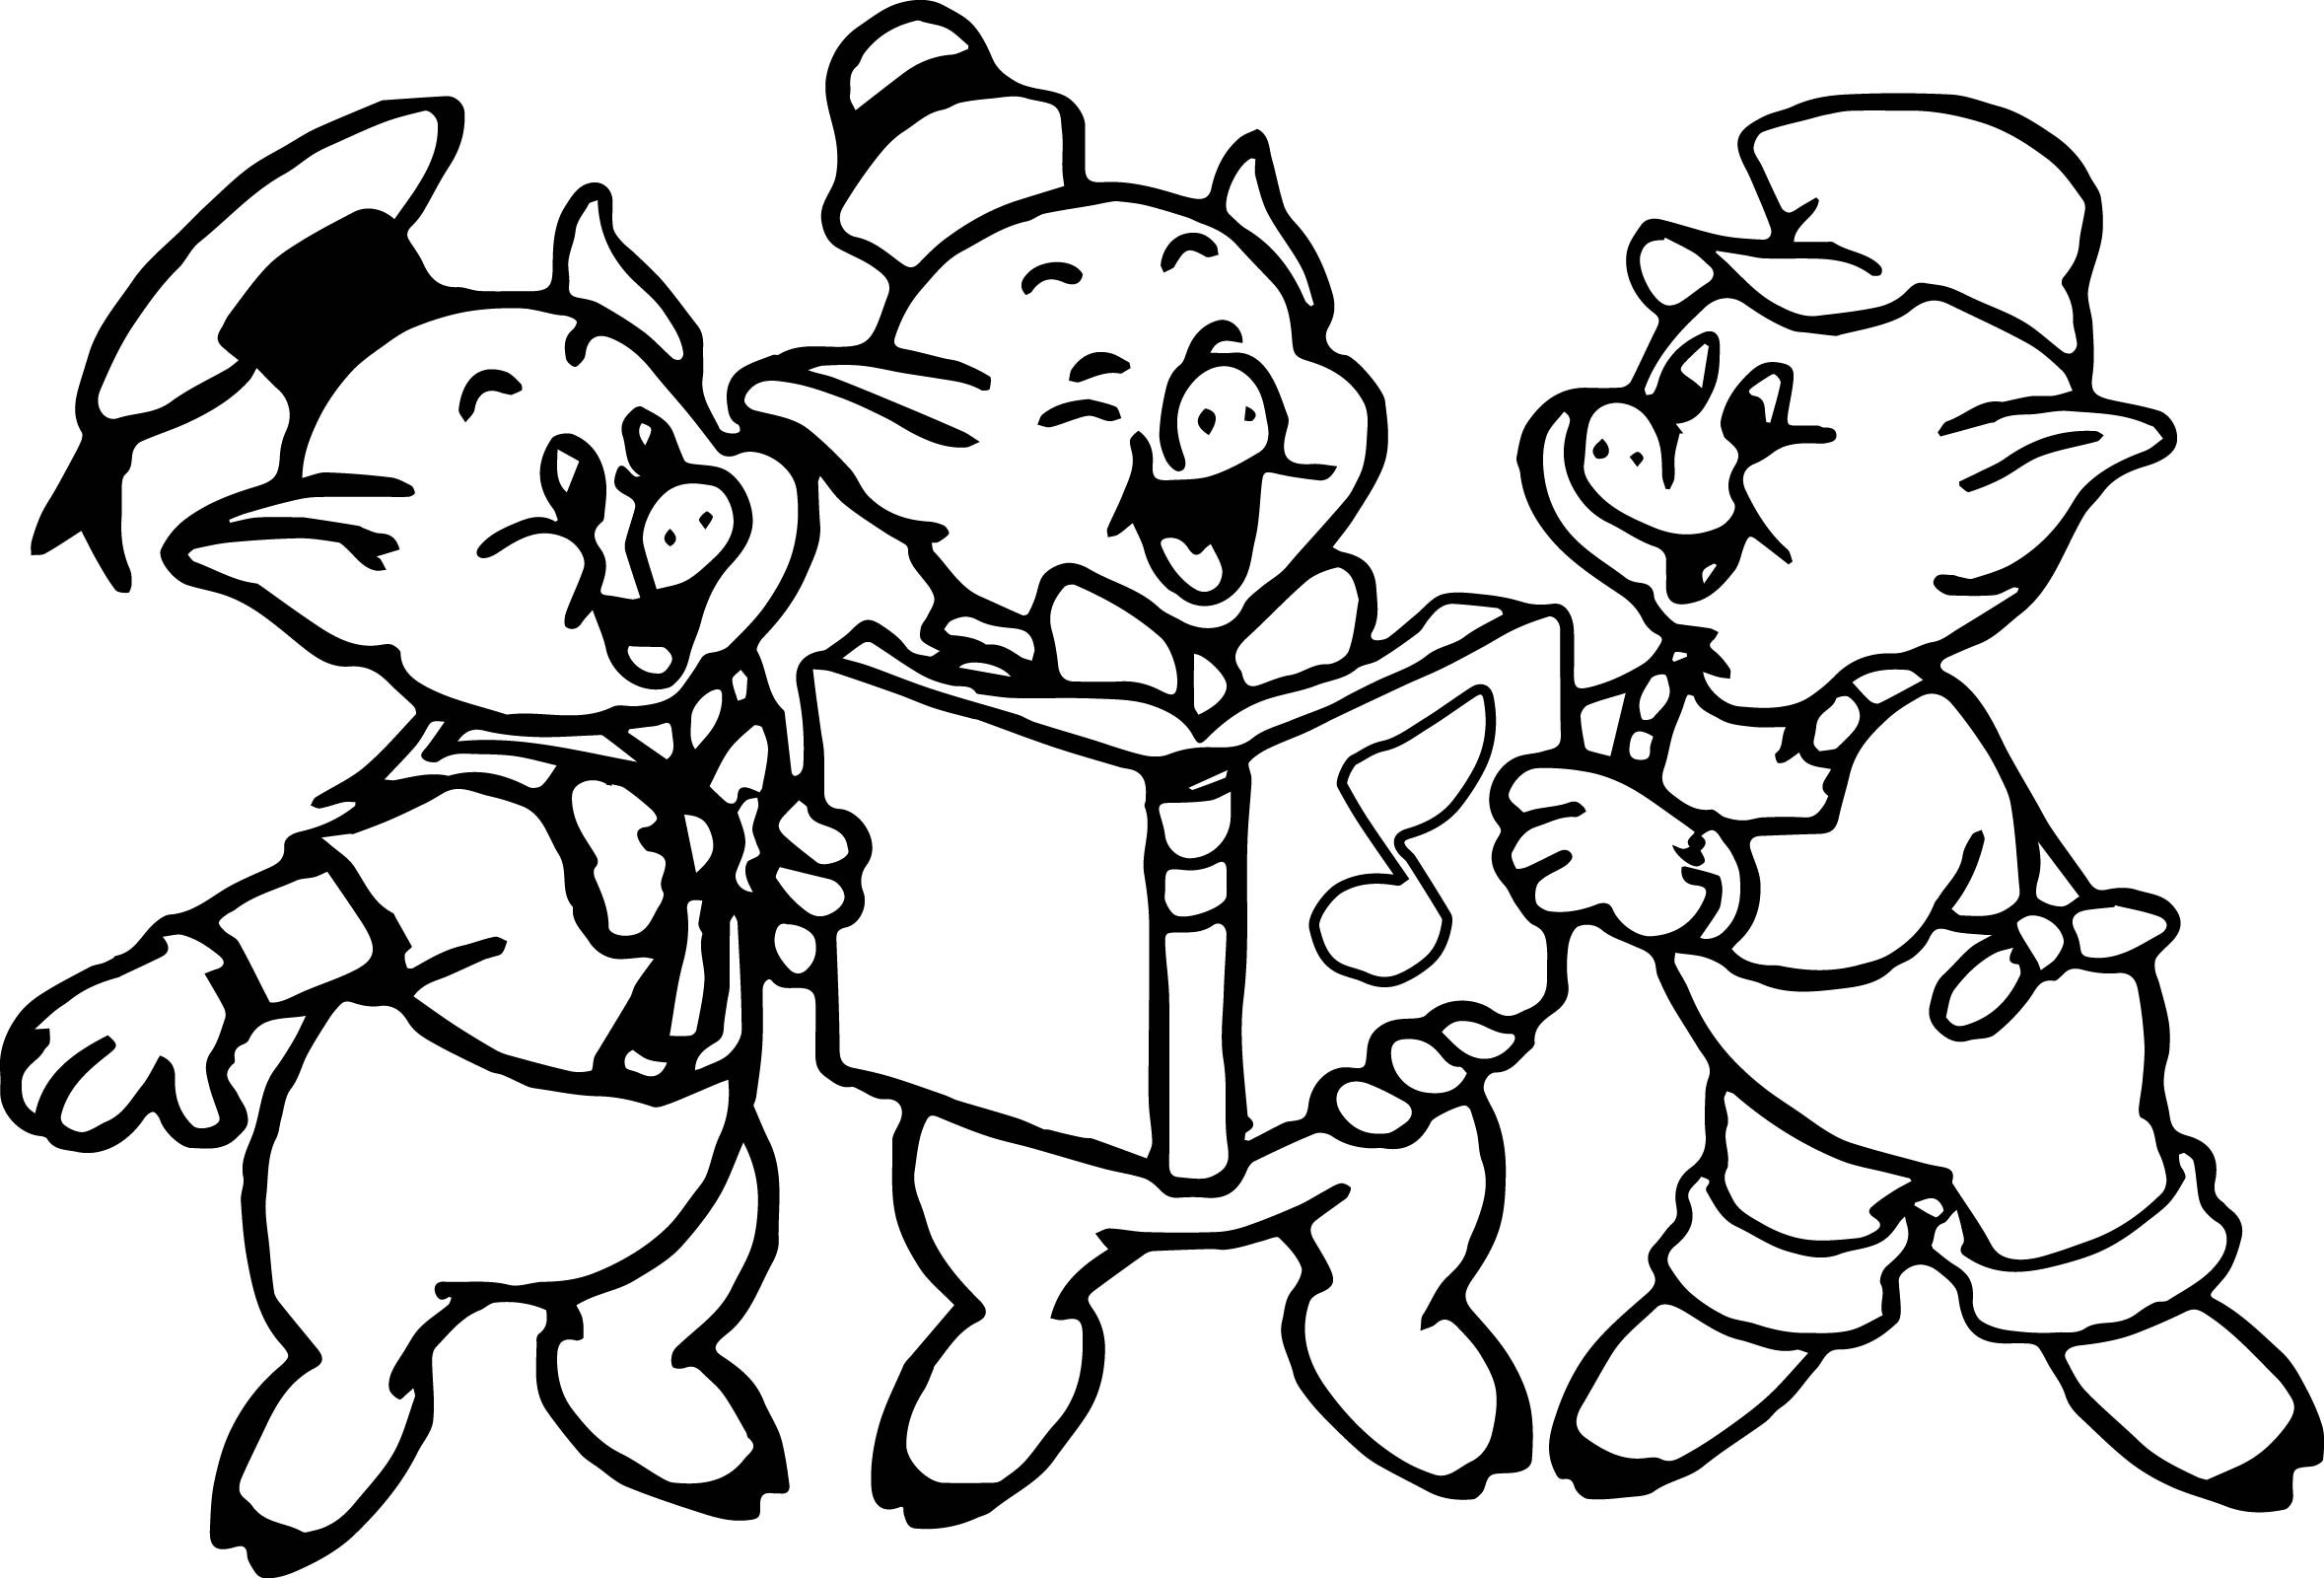 three little pigs music book coloring page wecoloringpage